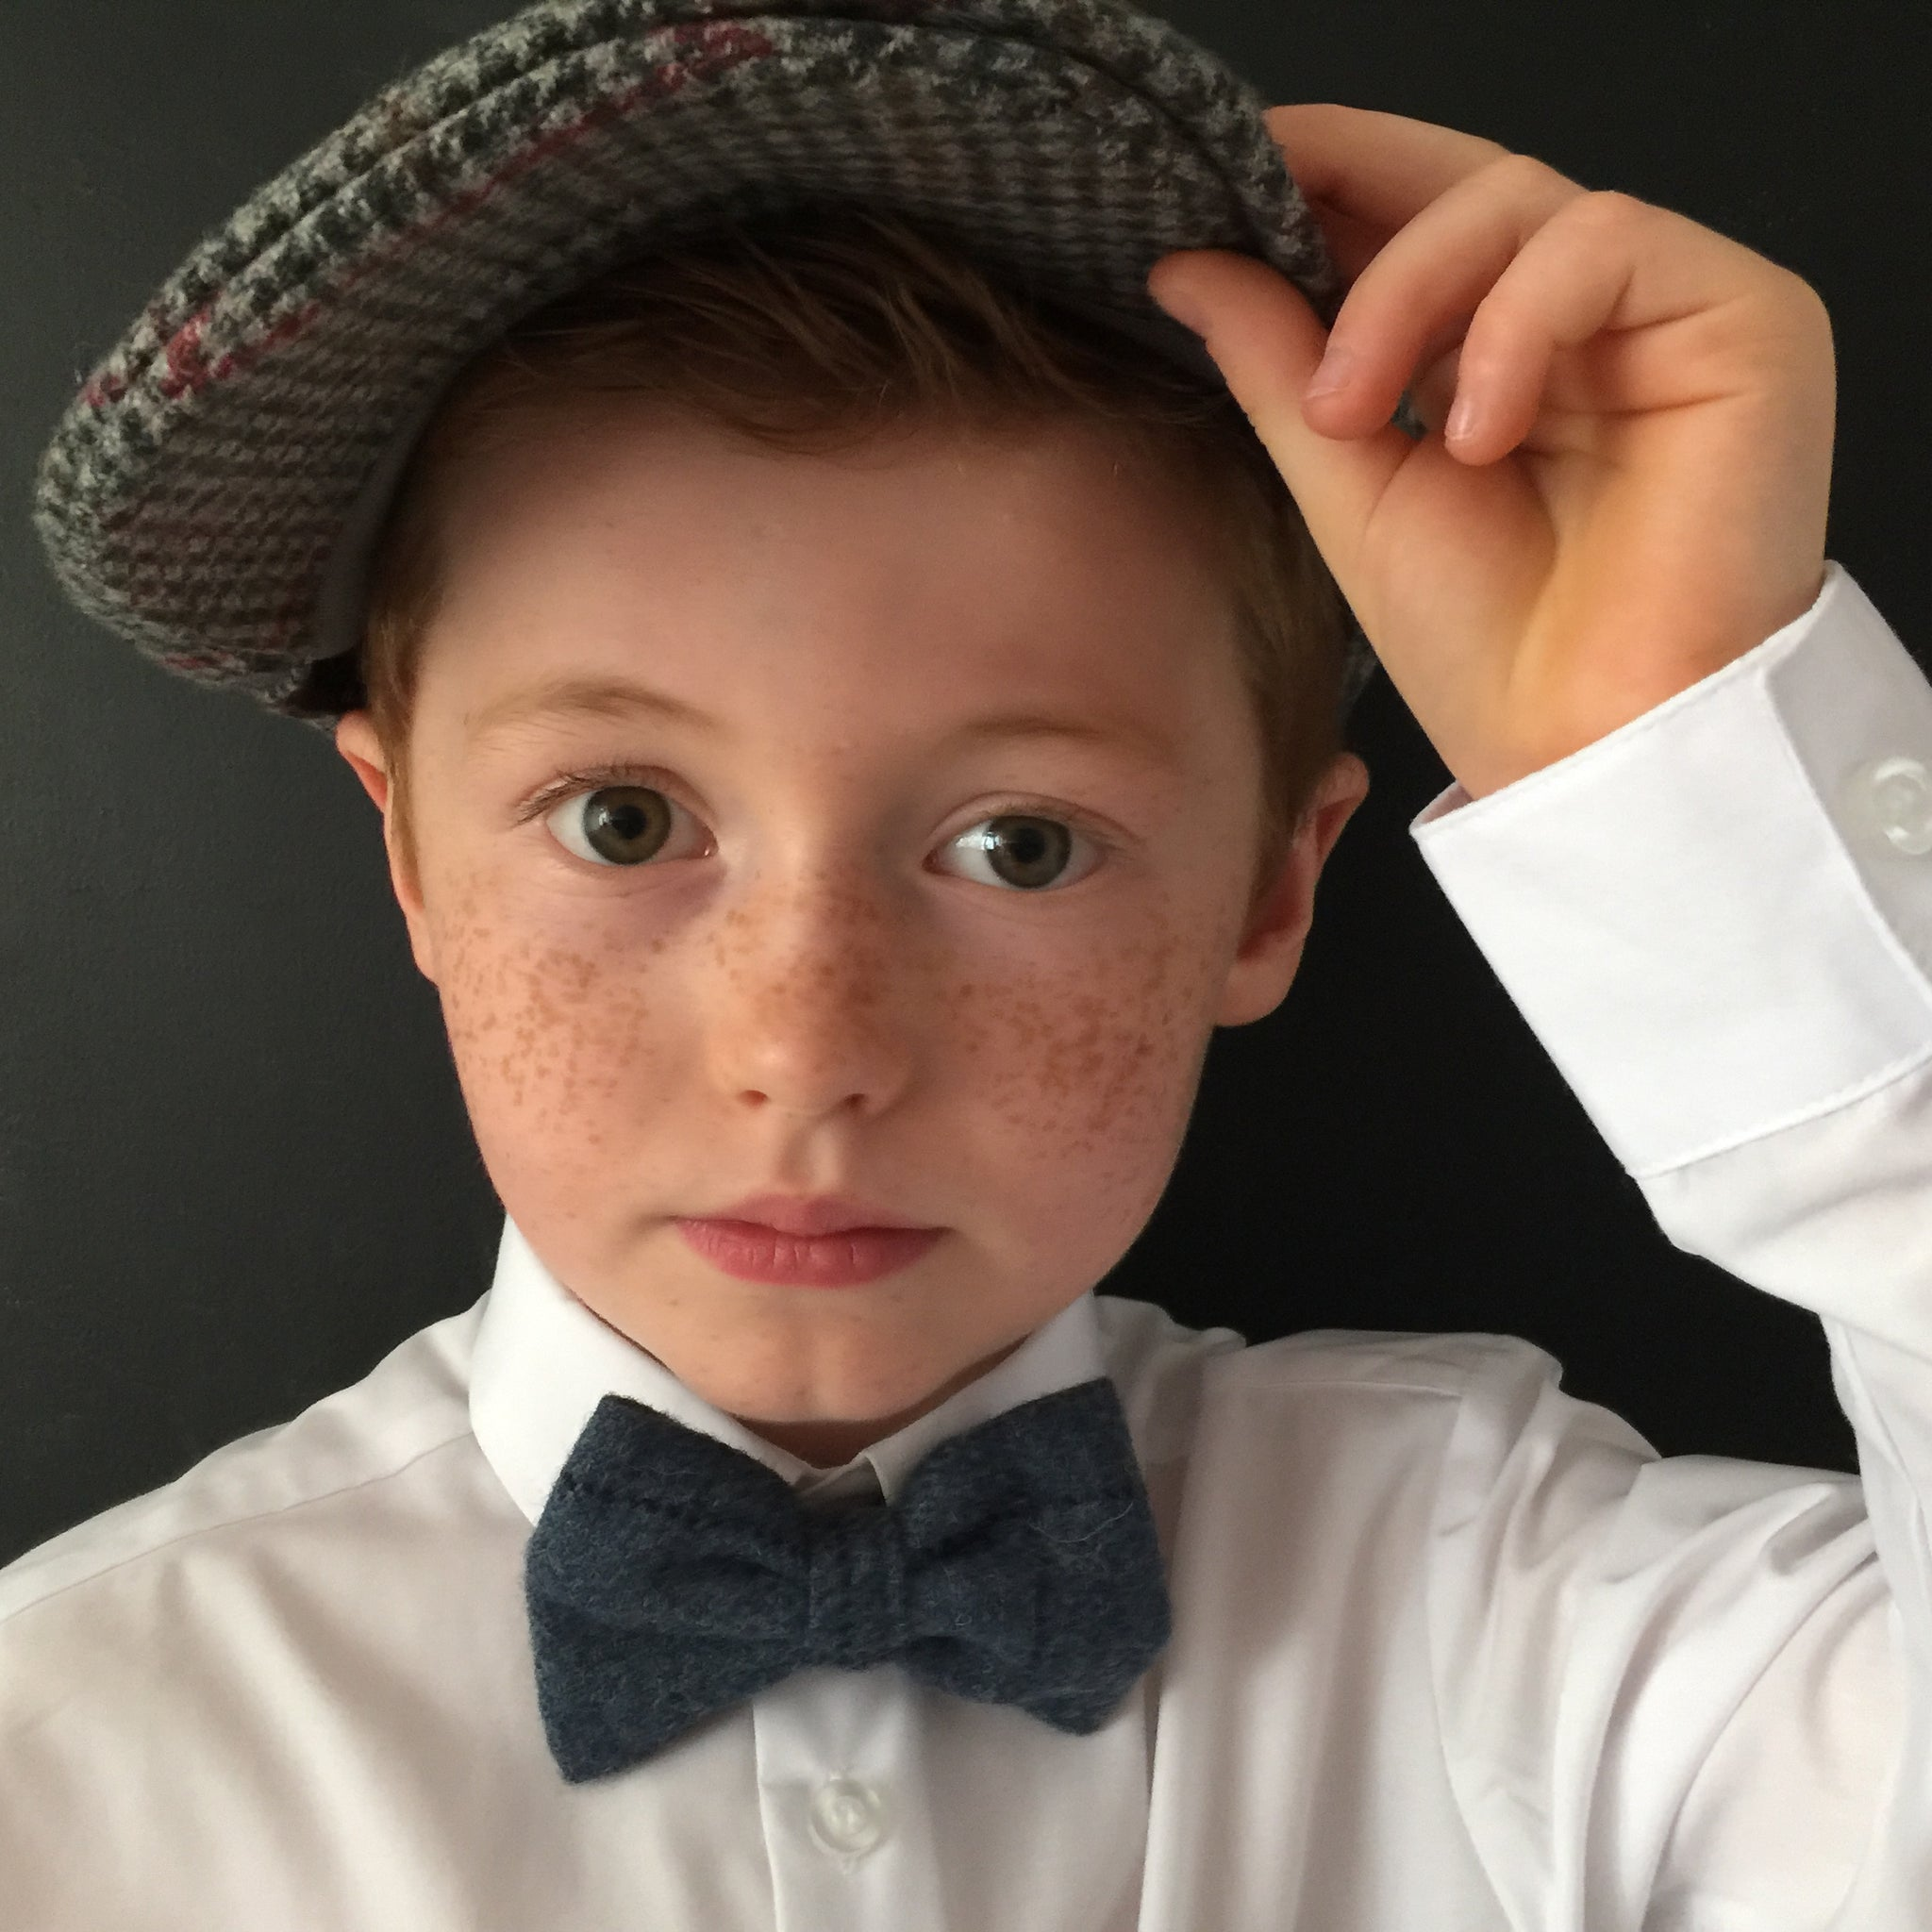 Boys Blue tweed bow tie, boys bow tie, mens bow tie, bow ties made to order, pageboy bow tie, groom bowtie - Earl of grantham